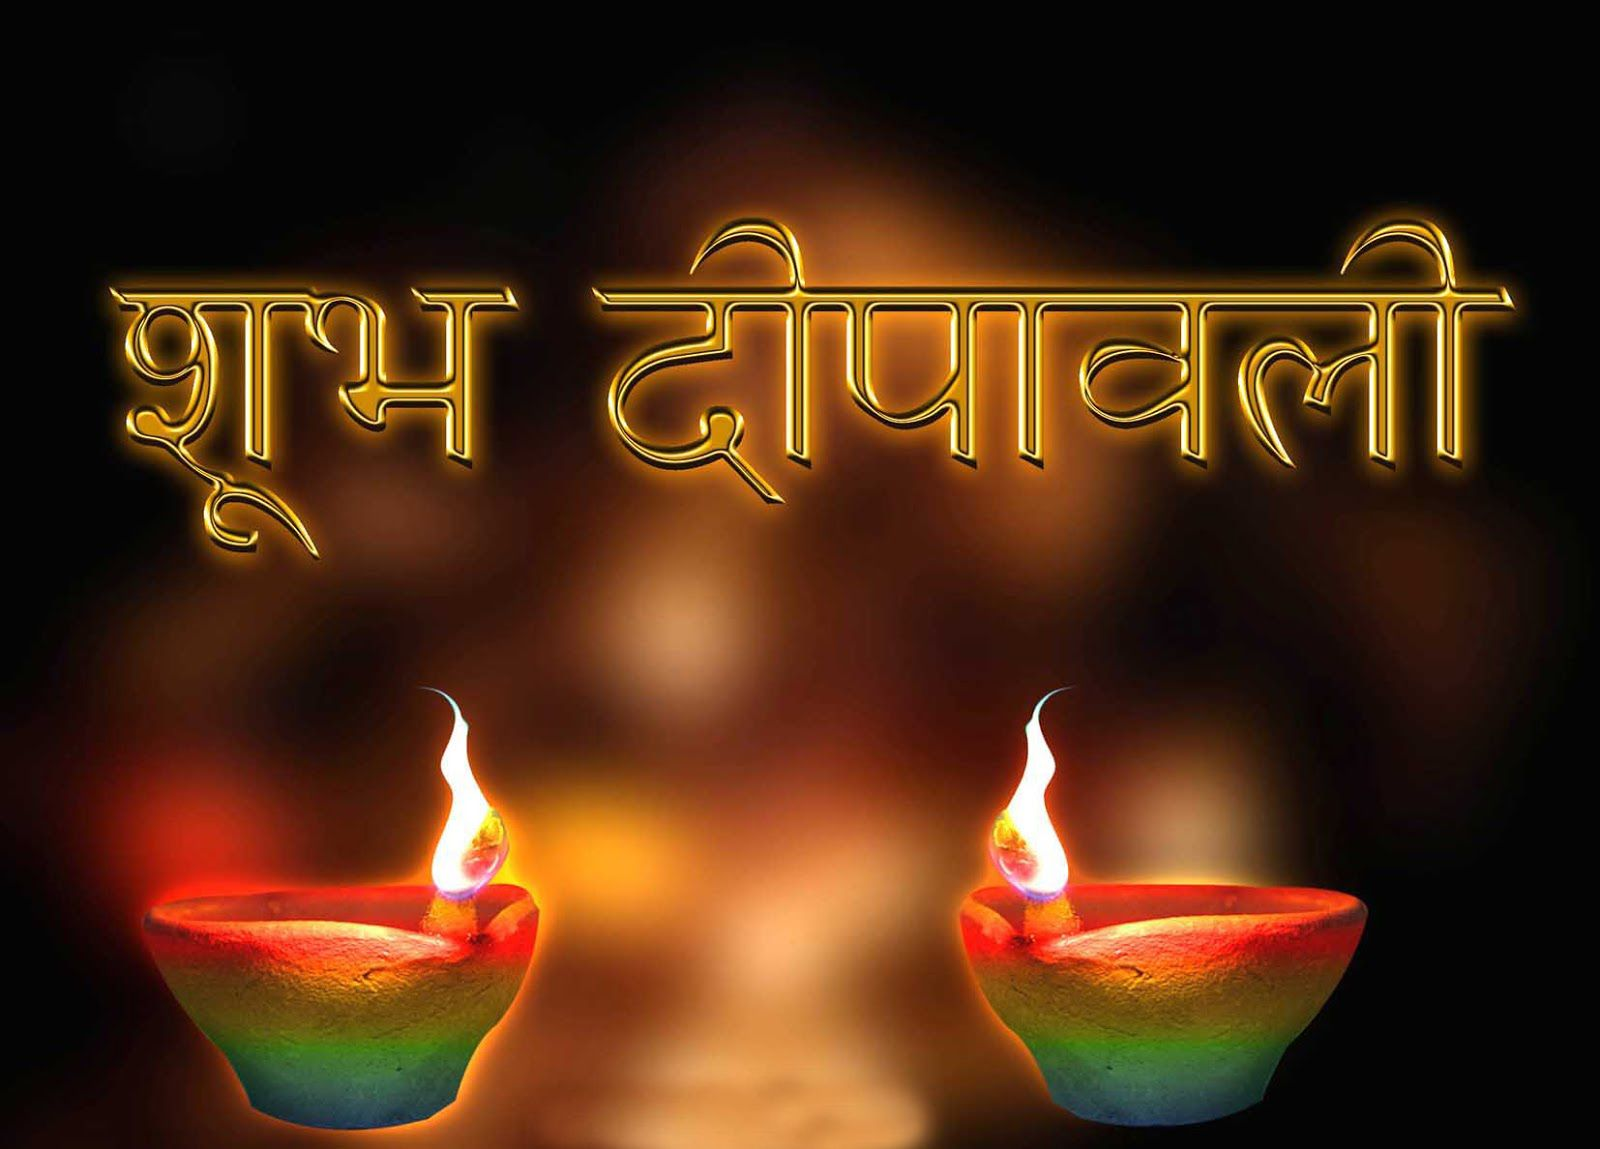 Wallpaper download diwali - Shubh Deepawali Diya Hd Photos Download